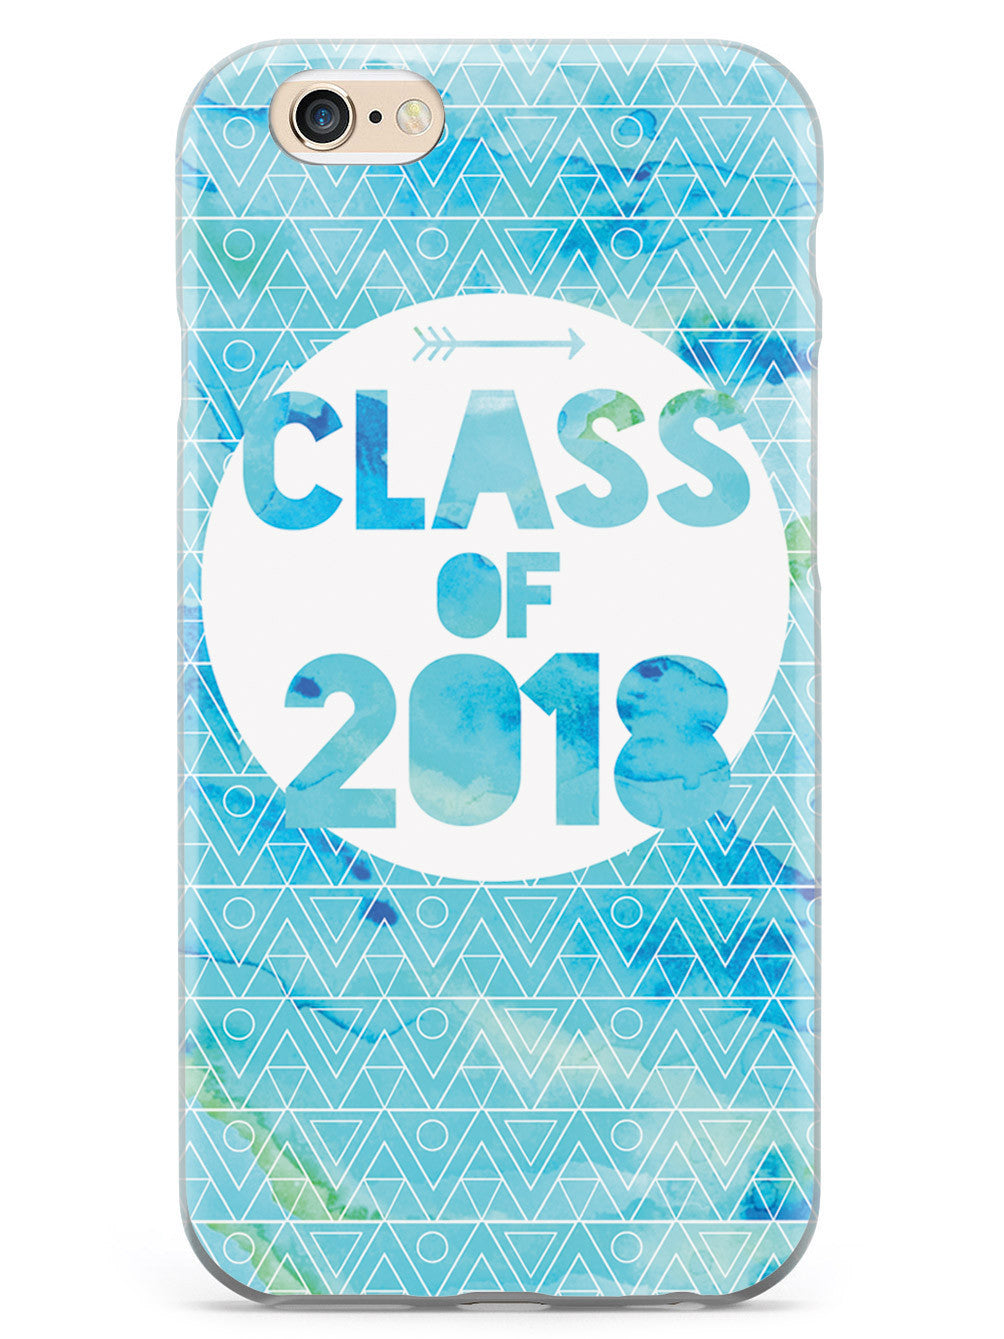 Class of 2018 - Blue Watercolor Case